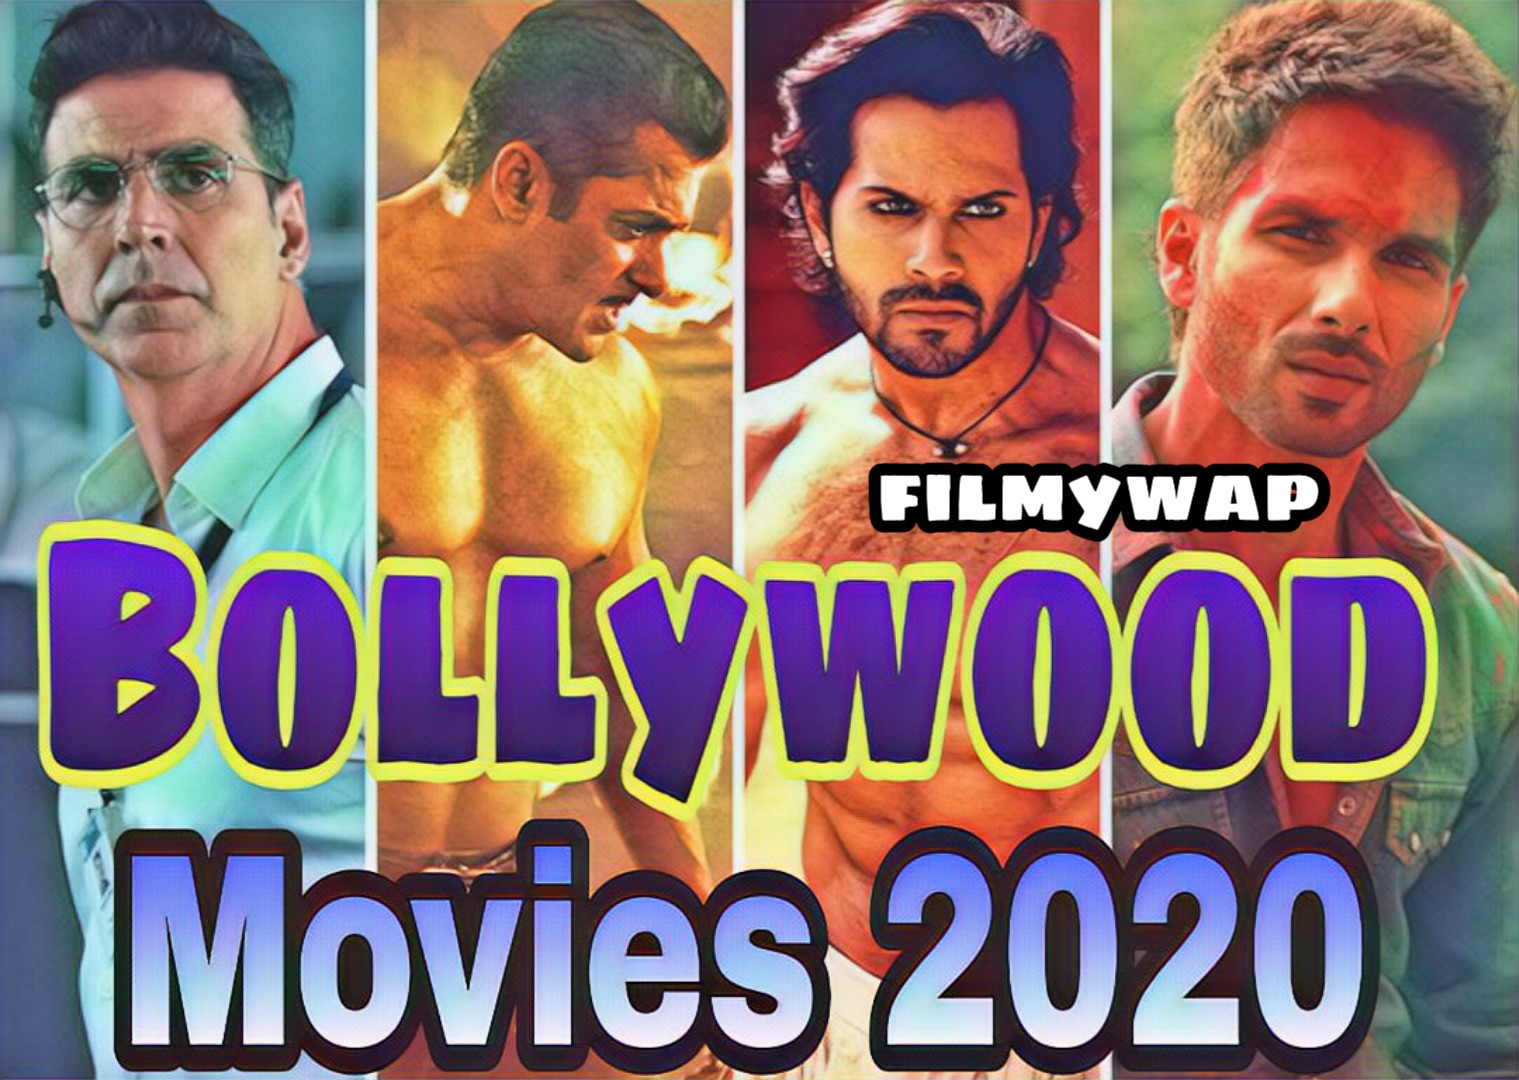 Filmywap Bollywood movies 2020: download full HD movies